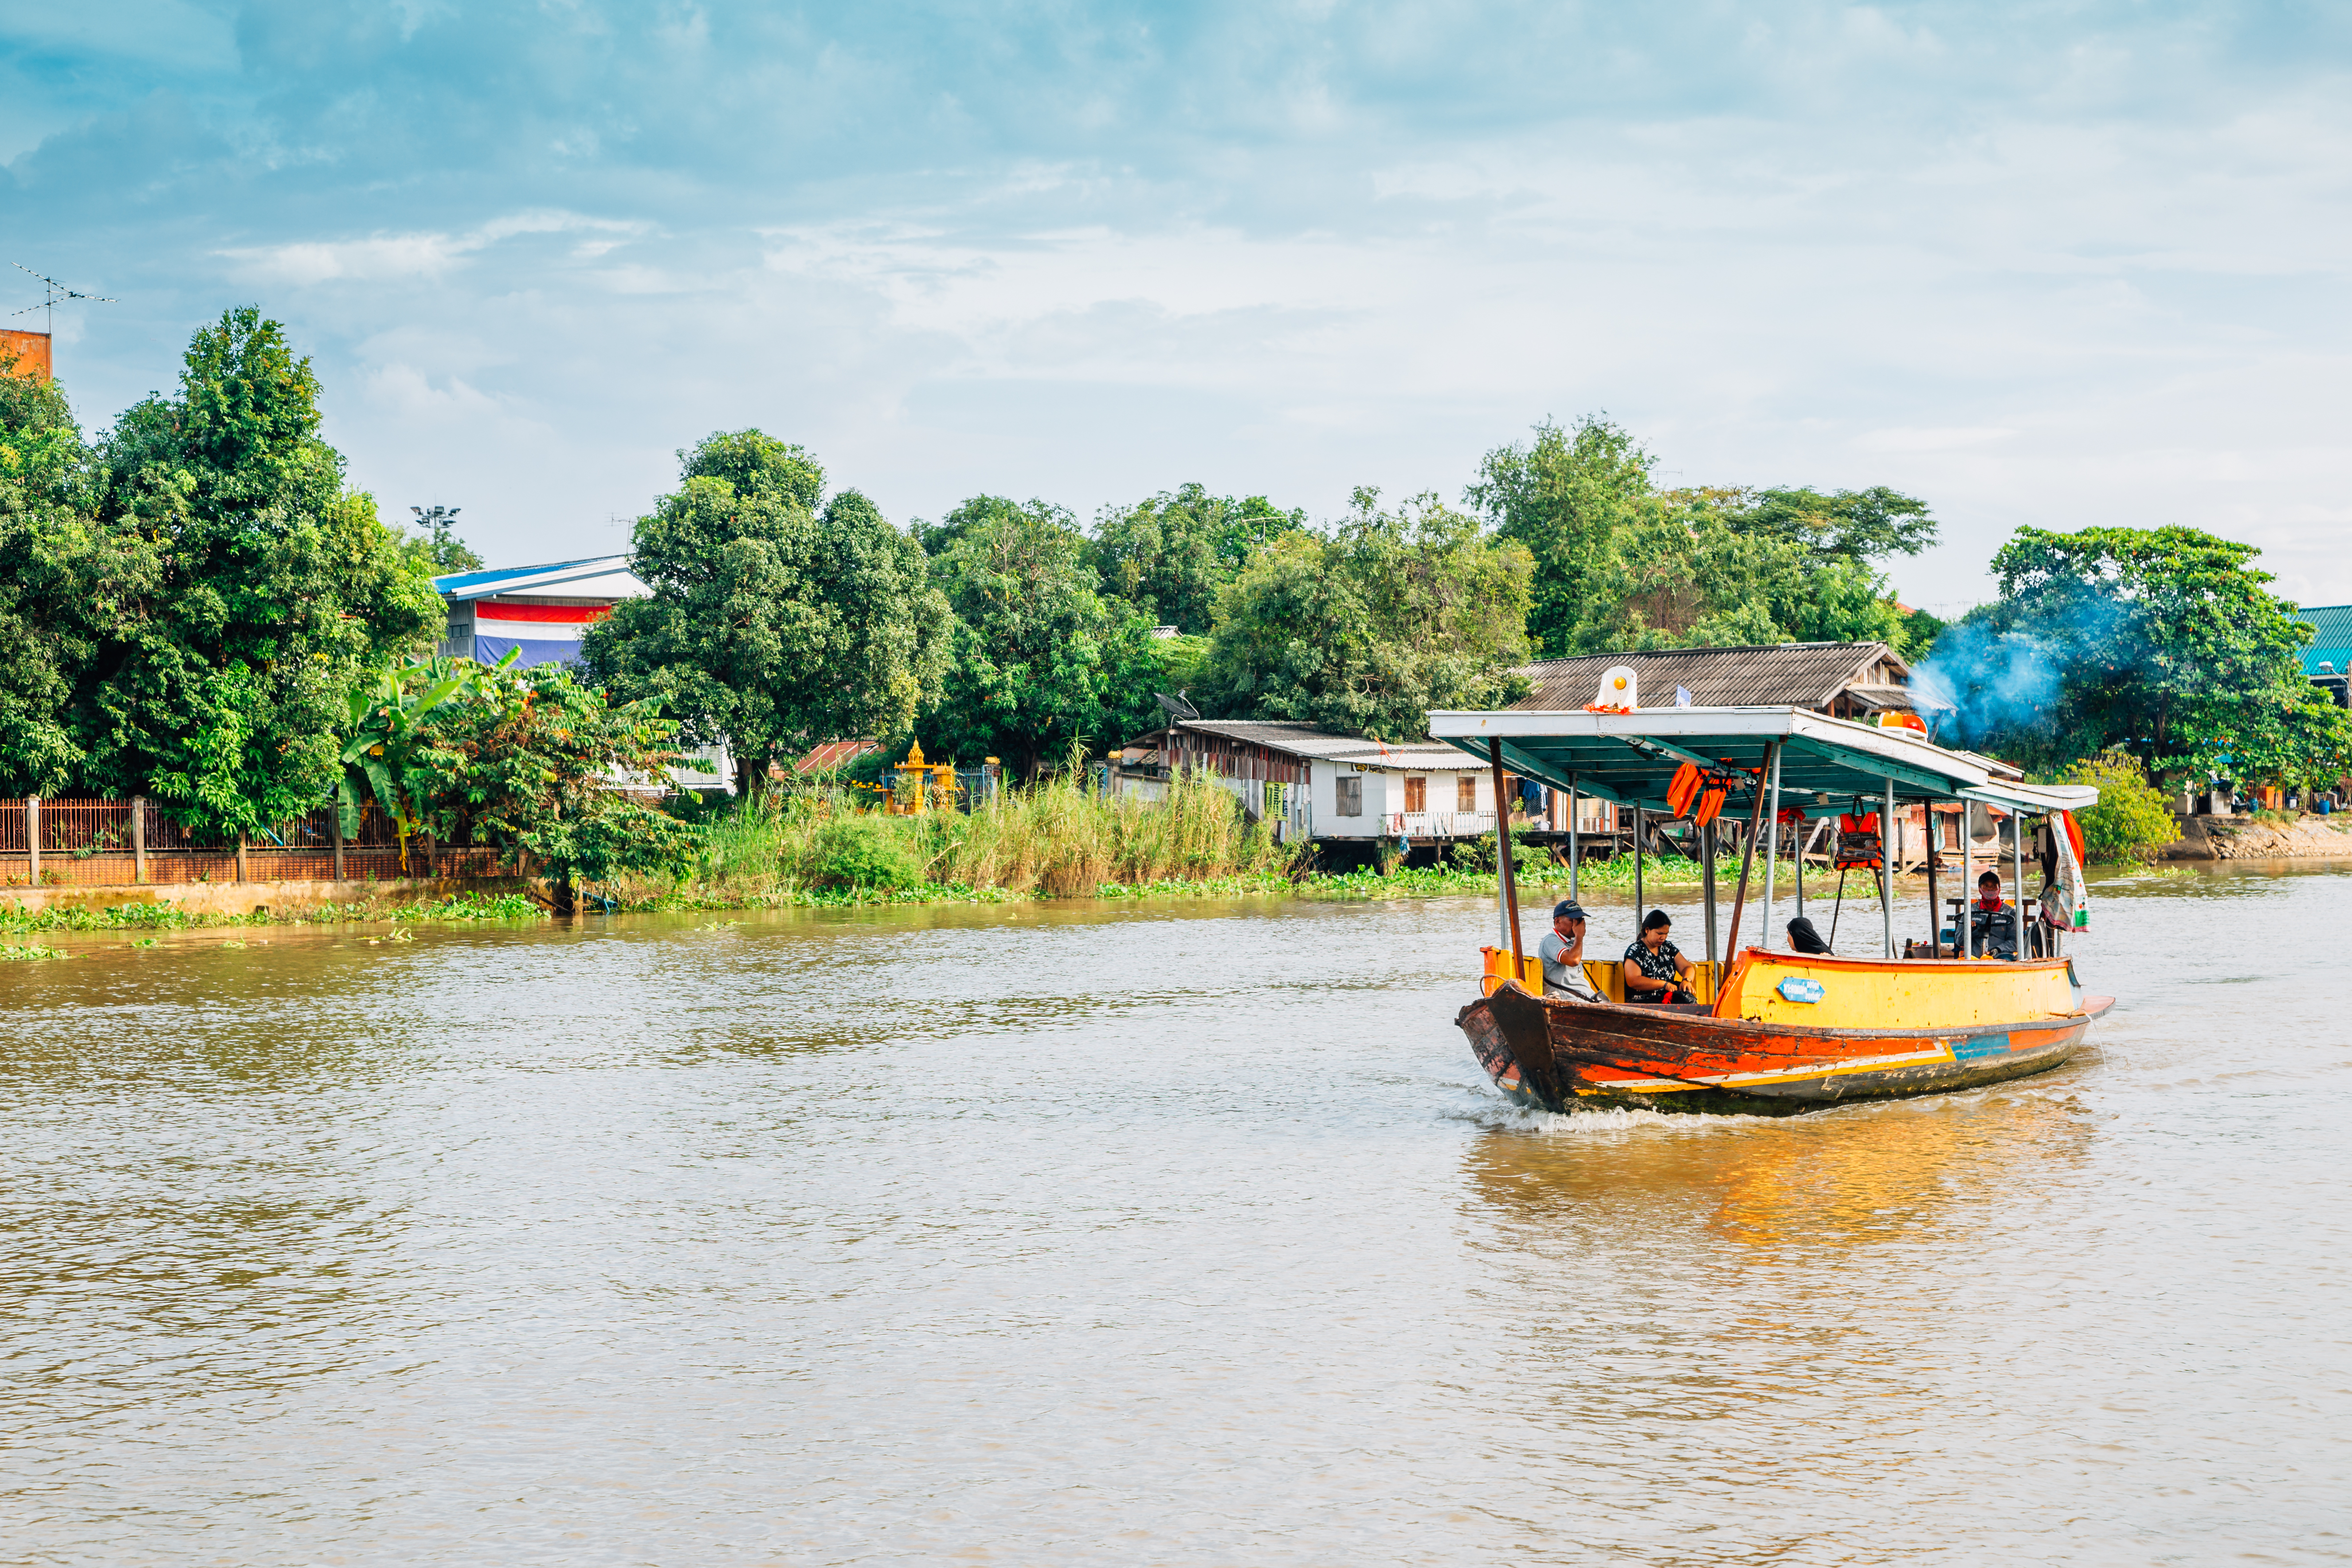 Ayutthaya, Thailand - November 9, 2017 : Old boat crossing the Pa Sak River at Ayutthaya train station pier